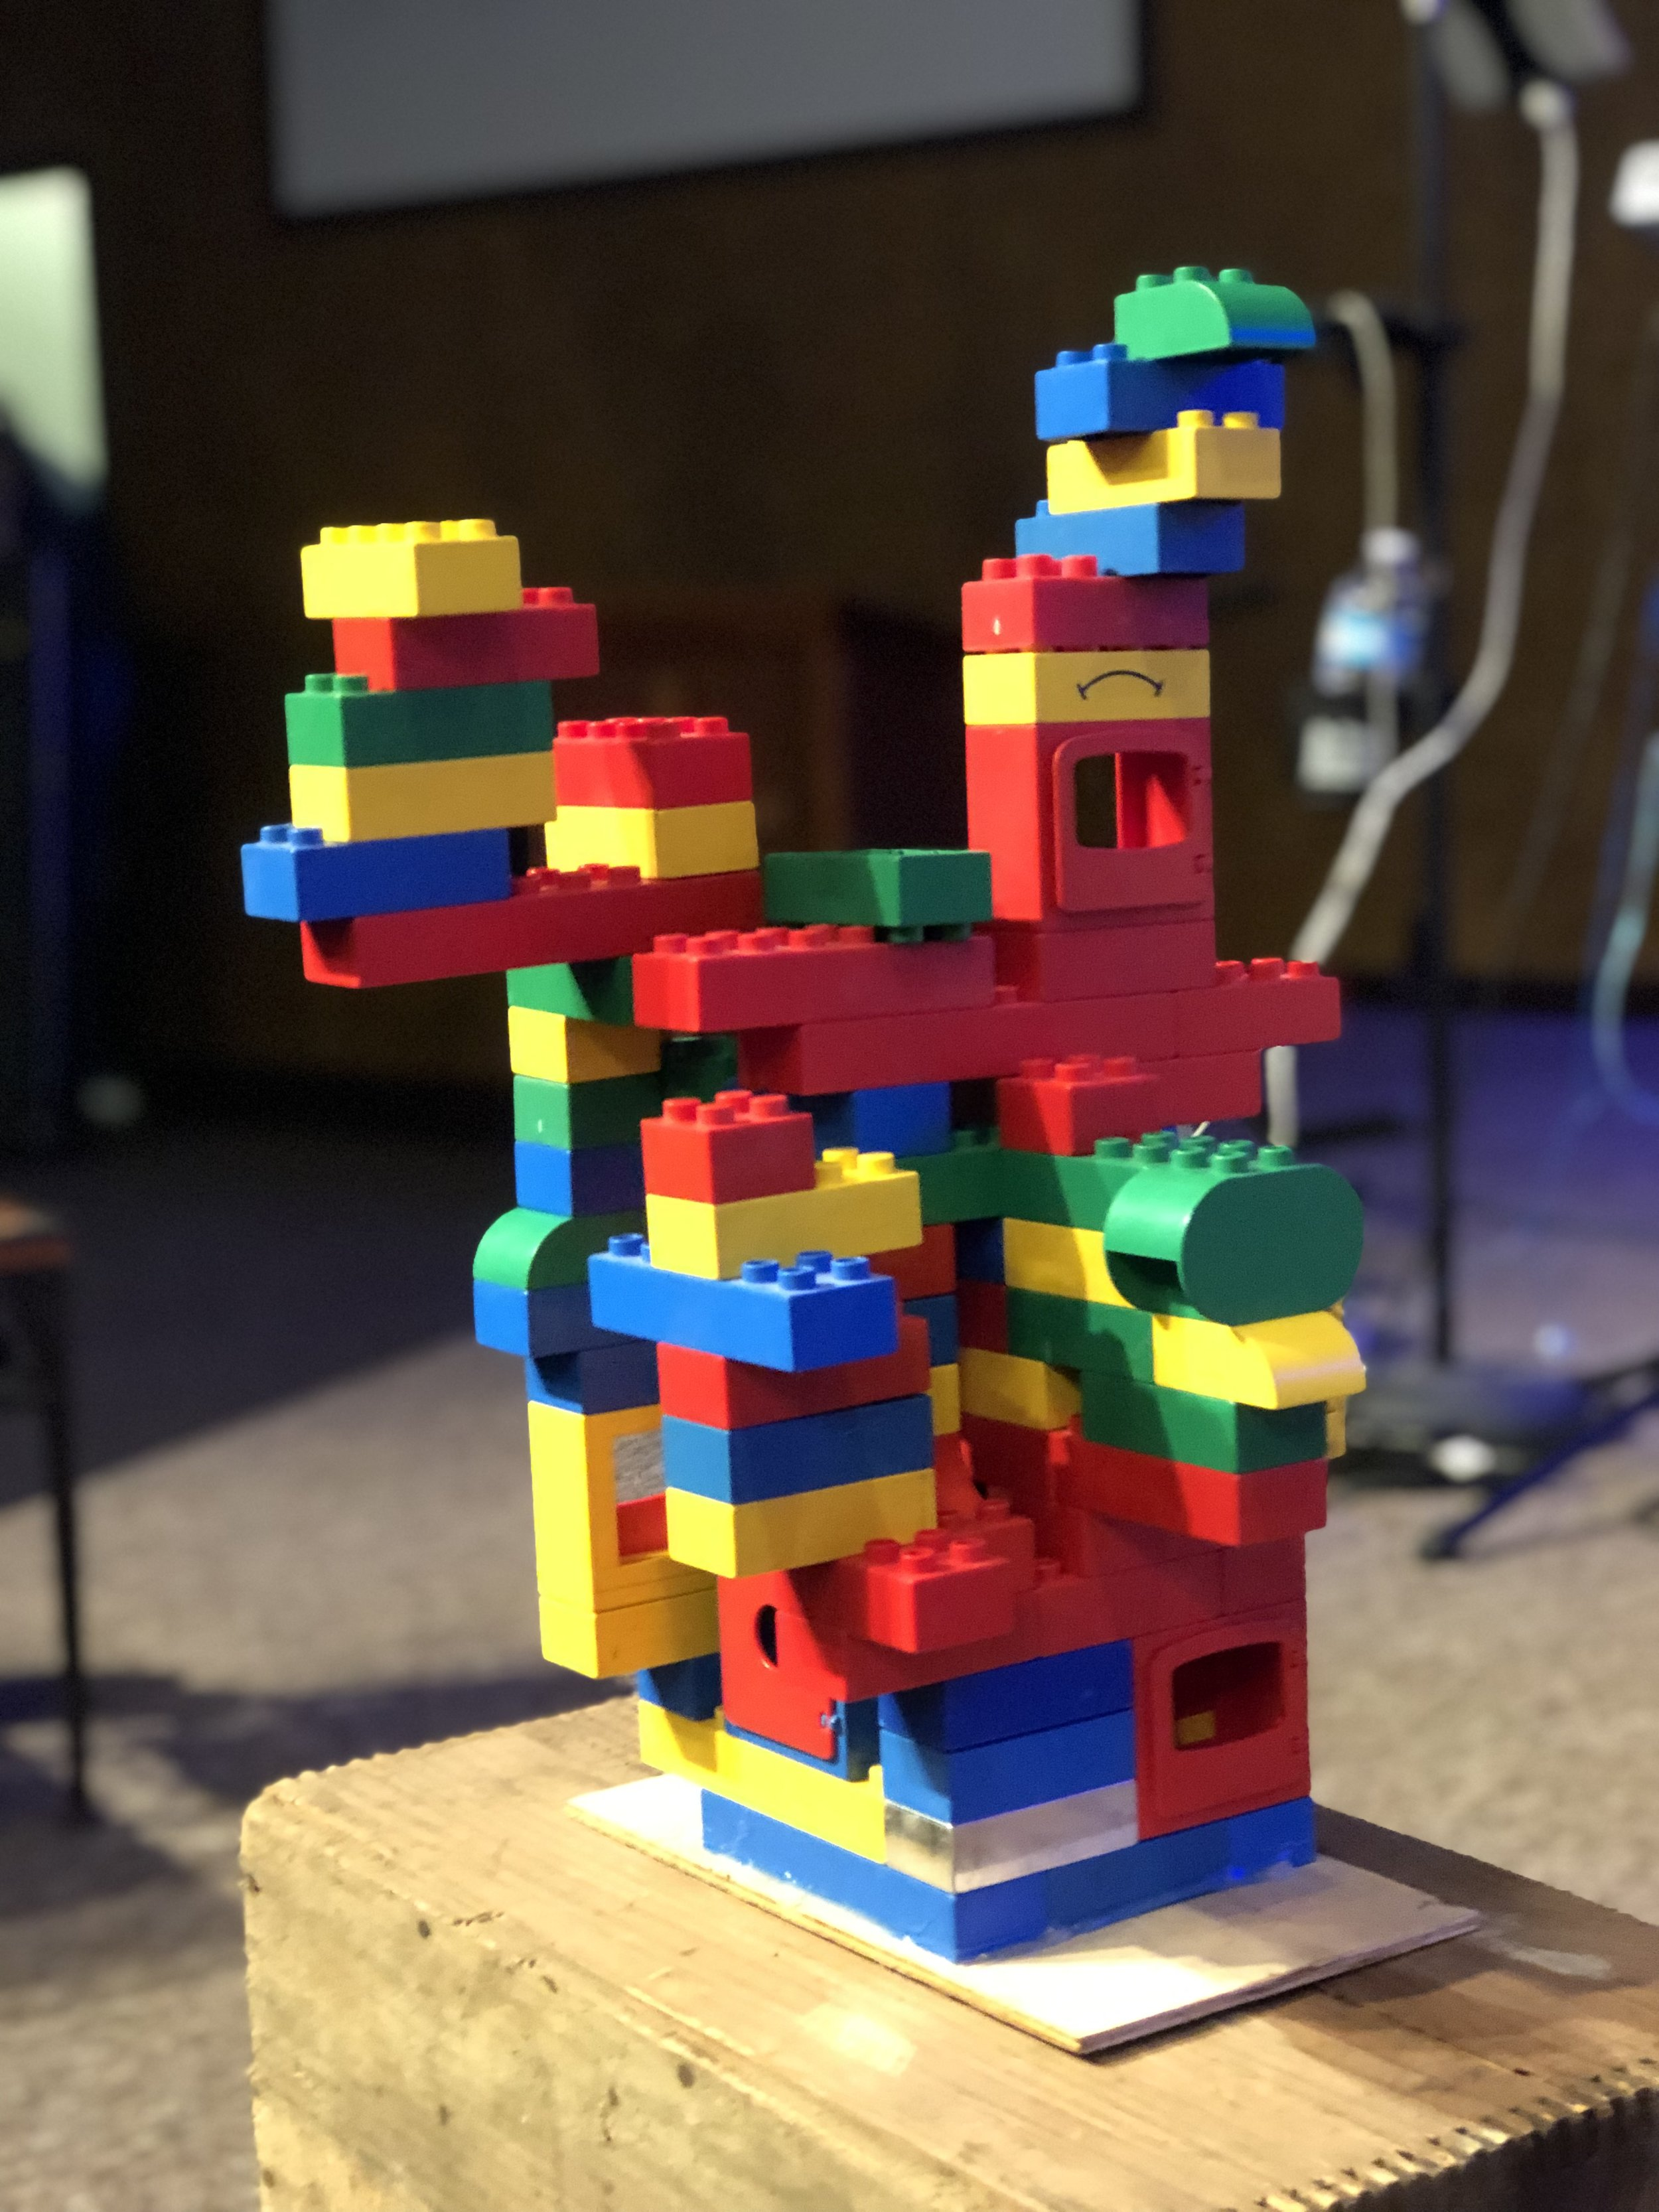 the church represented by legos